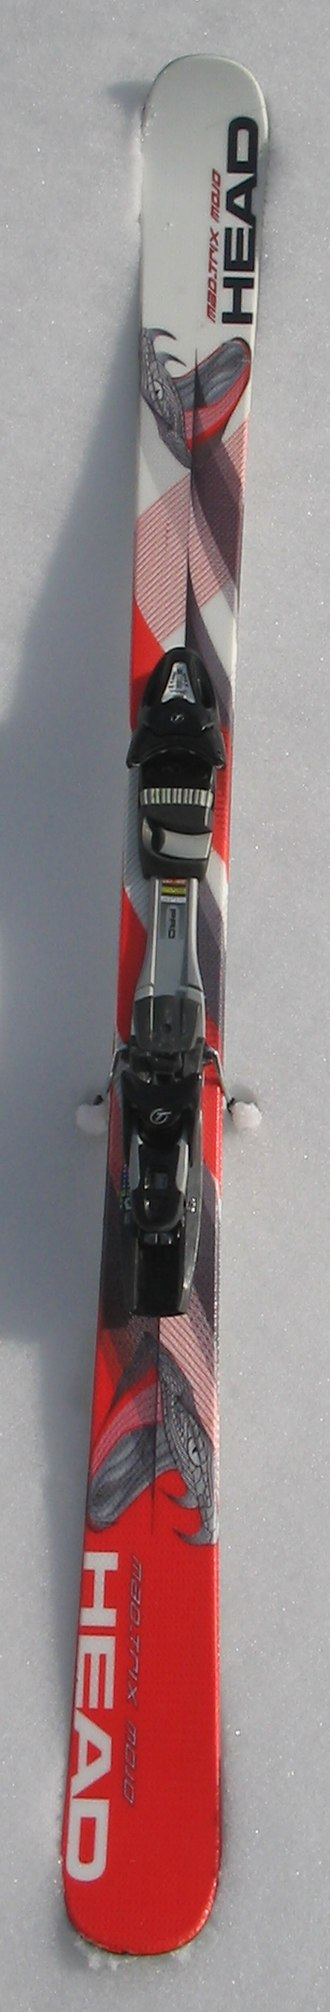 Ski -  A shaped alpine ski with relatively little sidecut and classic camber:  the tip and tail touch the snow while the midsection is in the air.